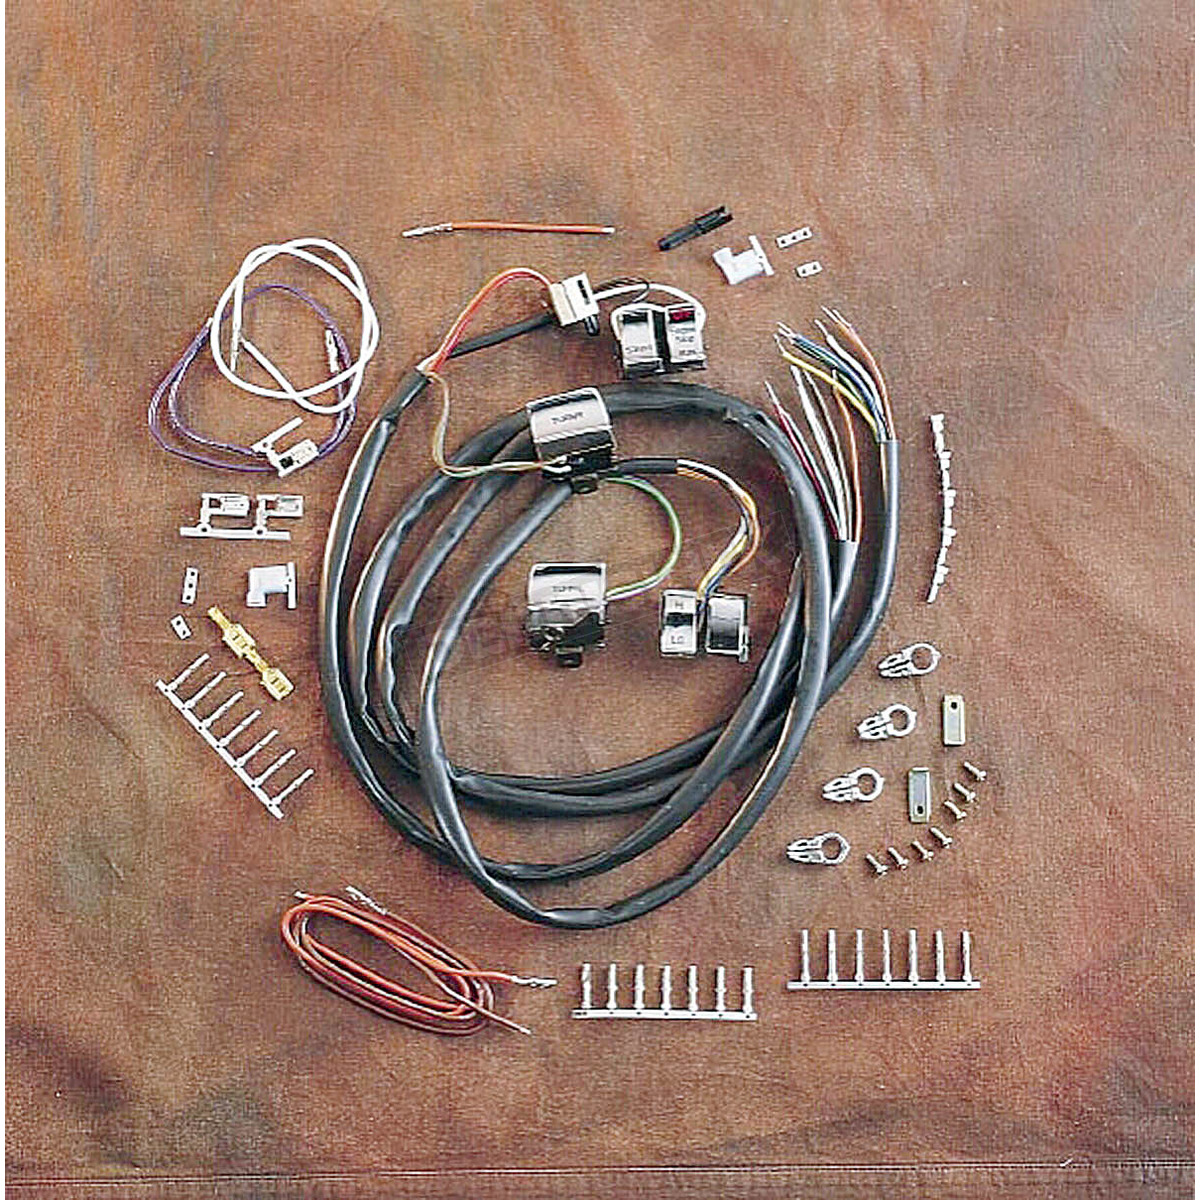 wrg 7488] chrome custom wiring harness